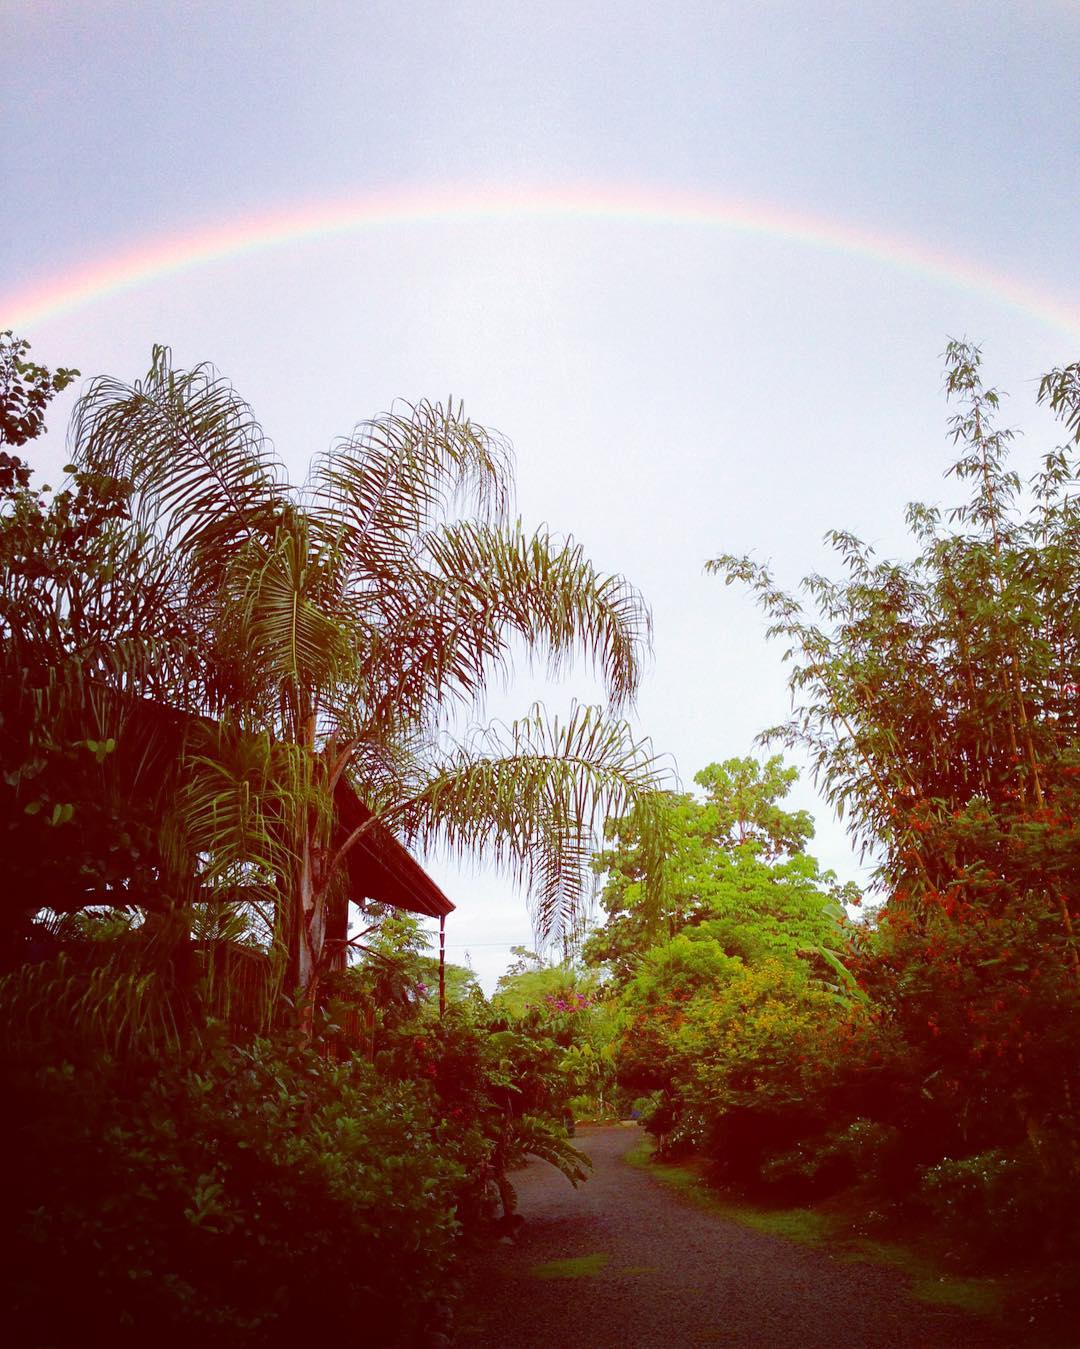 Perks of the rainy season: cooler evenings, much needed water for the plants, and of course, that ever-elusive rainbow! #MotherNatureMonday